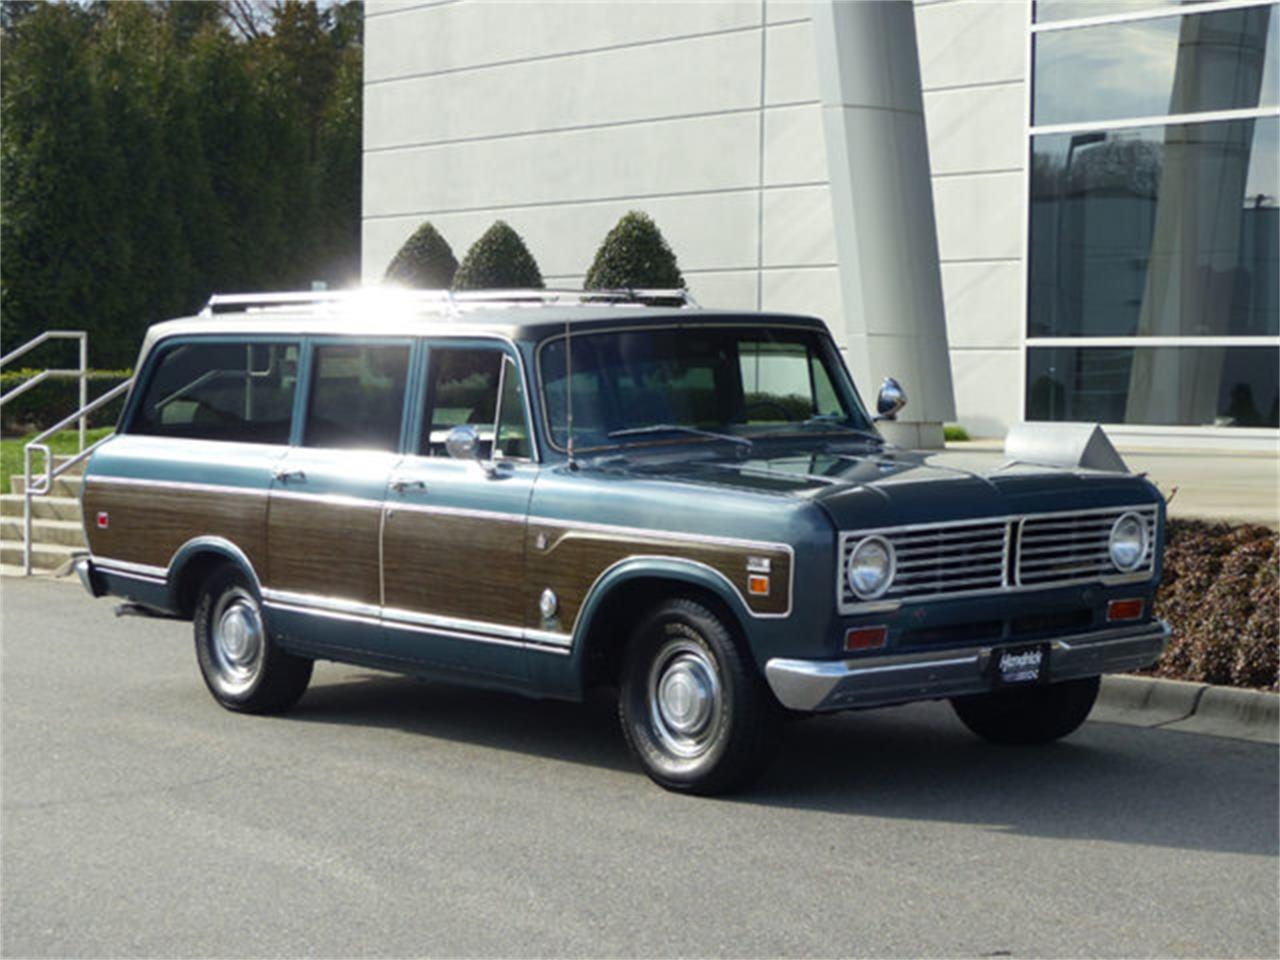 Large Picture of '73 International Travelall located in North Carolina - $29,990.00 Offered by Hendrick Performance - Q4TC